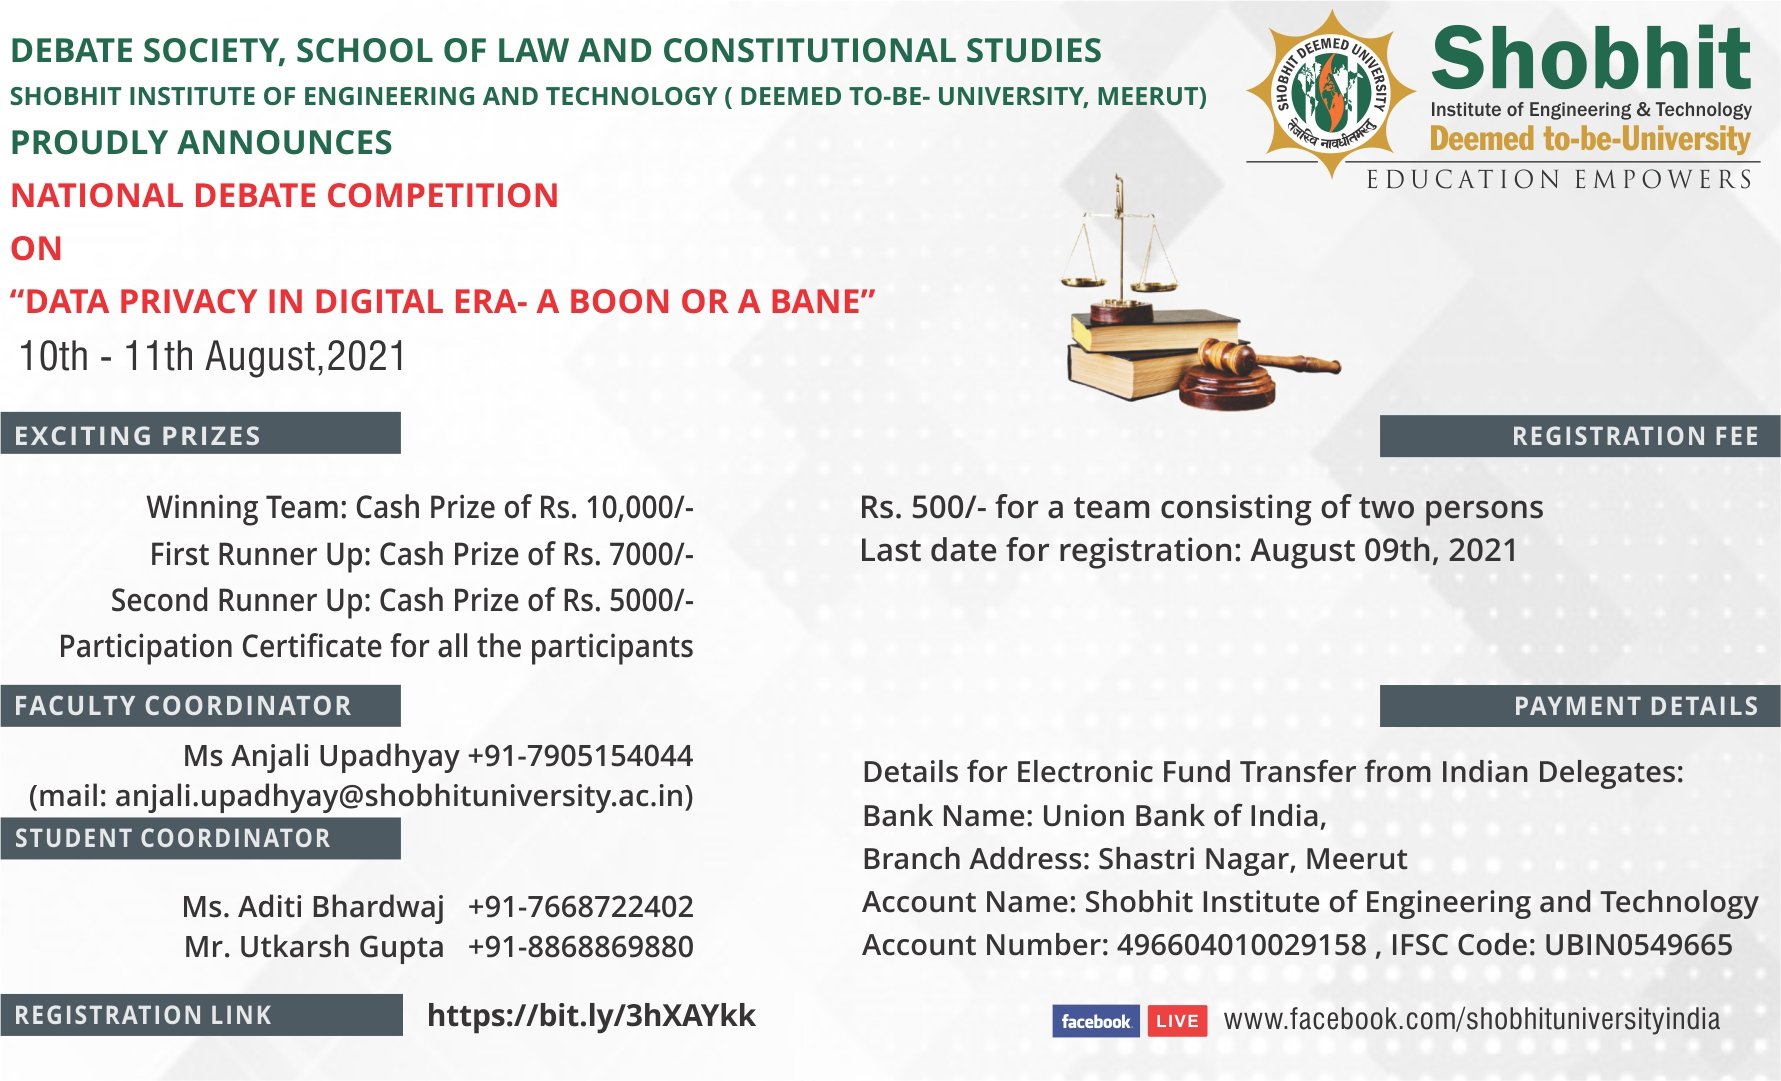 Shobhit Institute of Engineering & Technology's Debate Competition on Data Privacy in Digital Era: A Boon or Bane [Aug 10-11]: Register by August 9 (Cash Prizes Worth INR 22k)